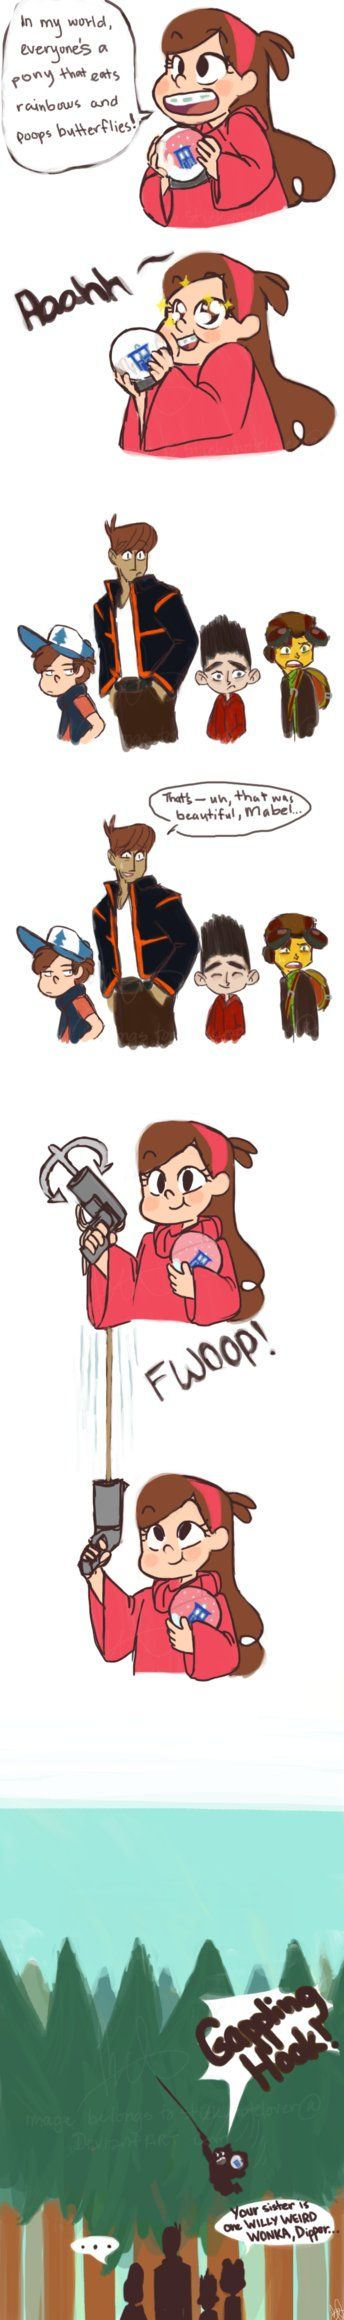 mystery kids - It had to be done by stickynotelover on deviantART